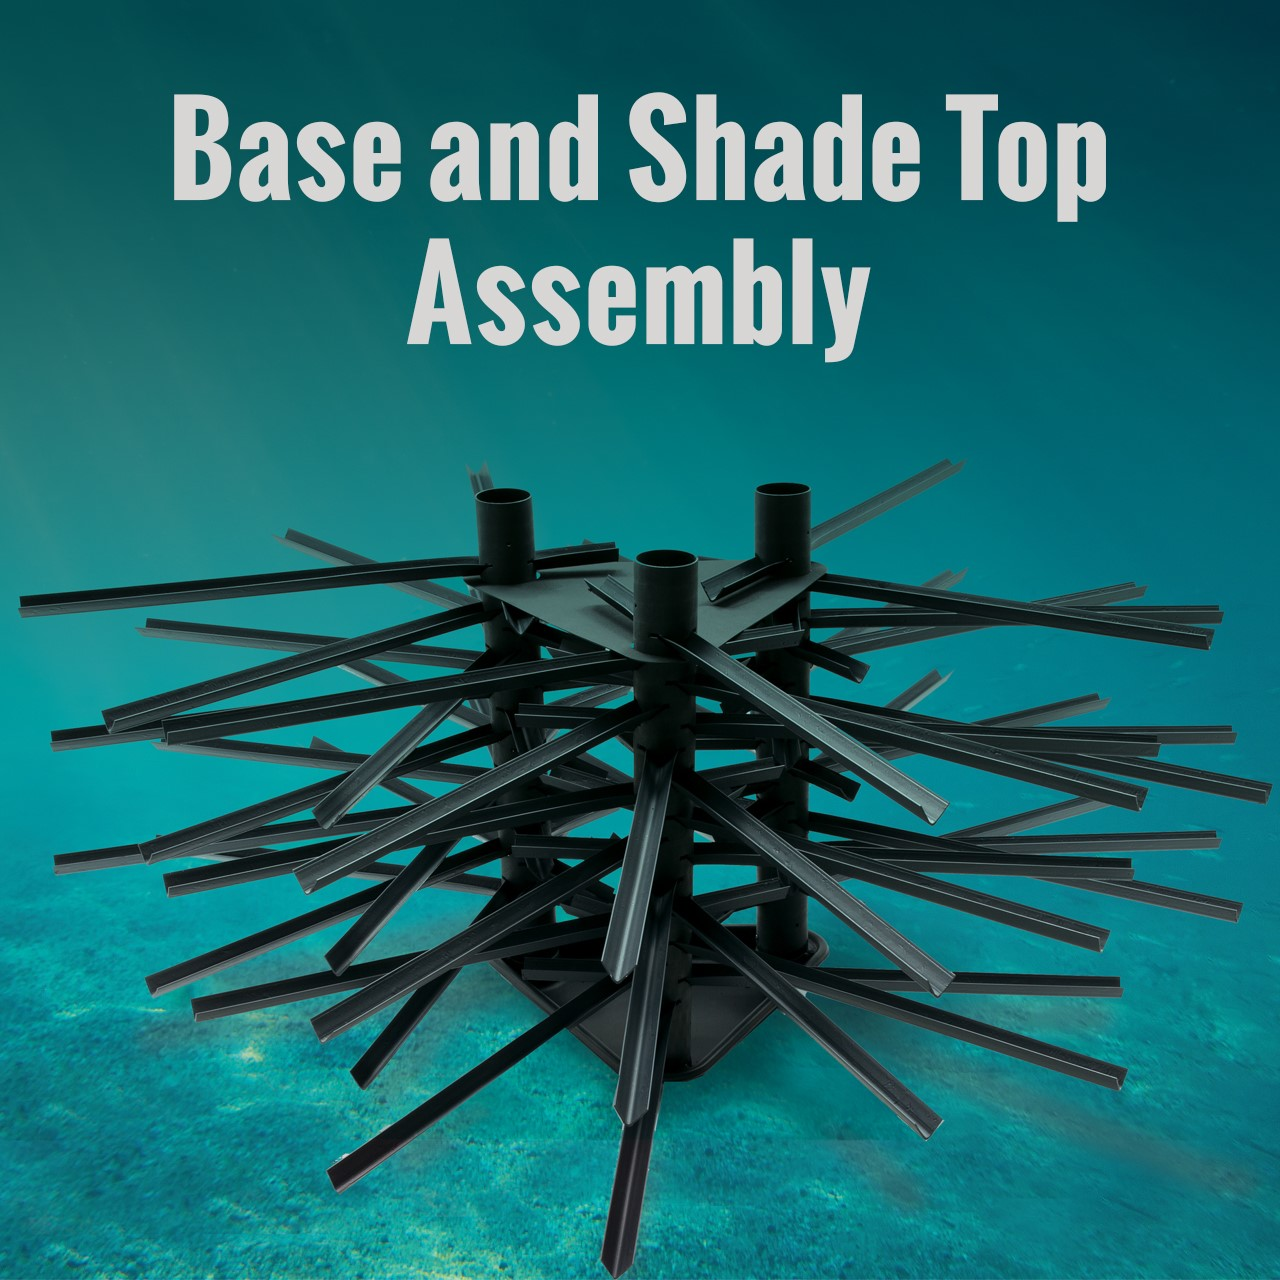 Base and Shade Top Assembly